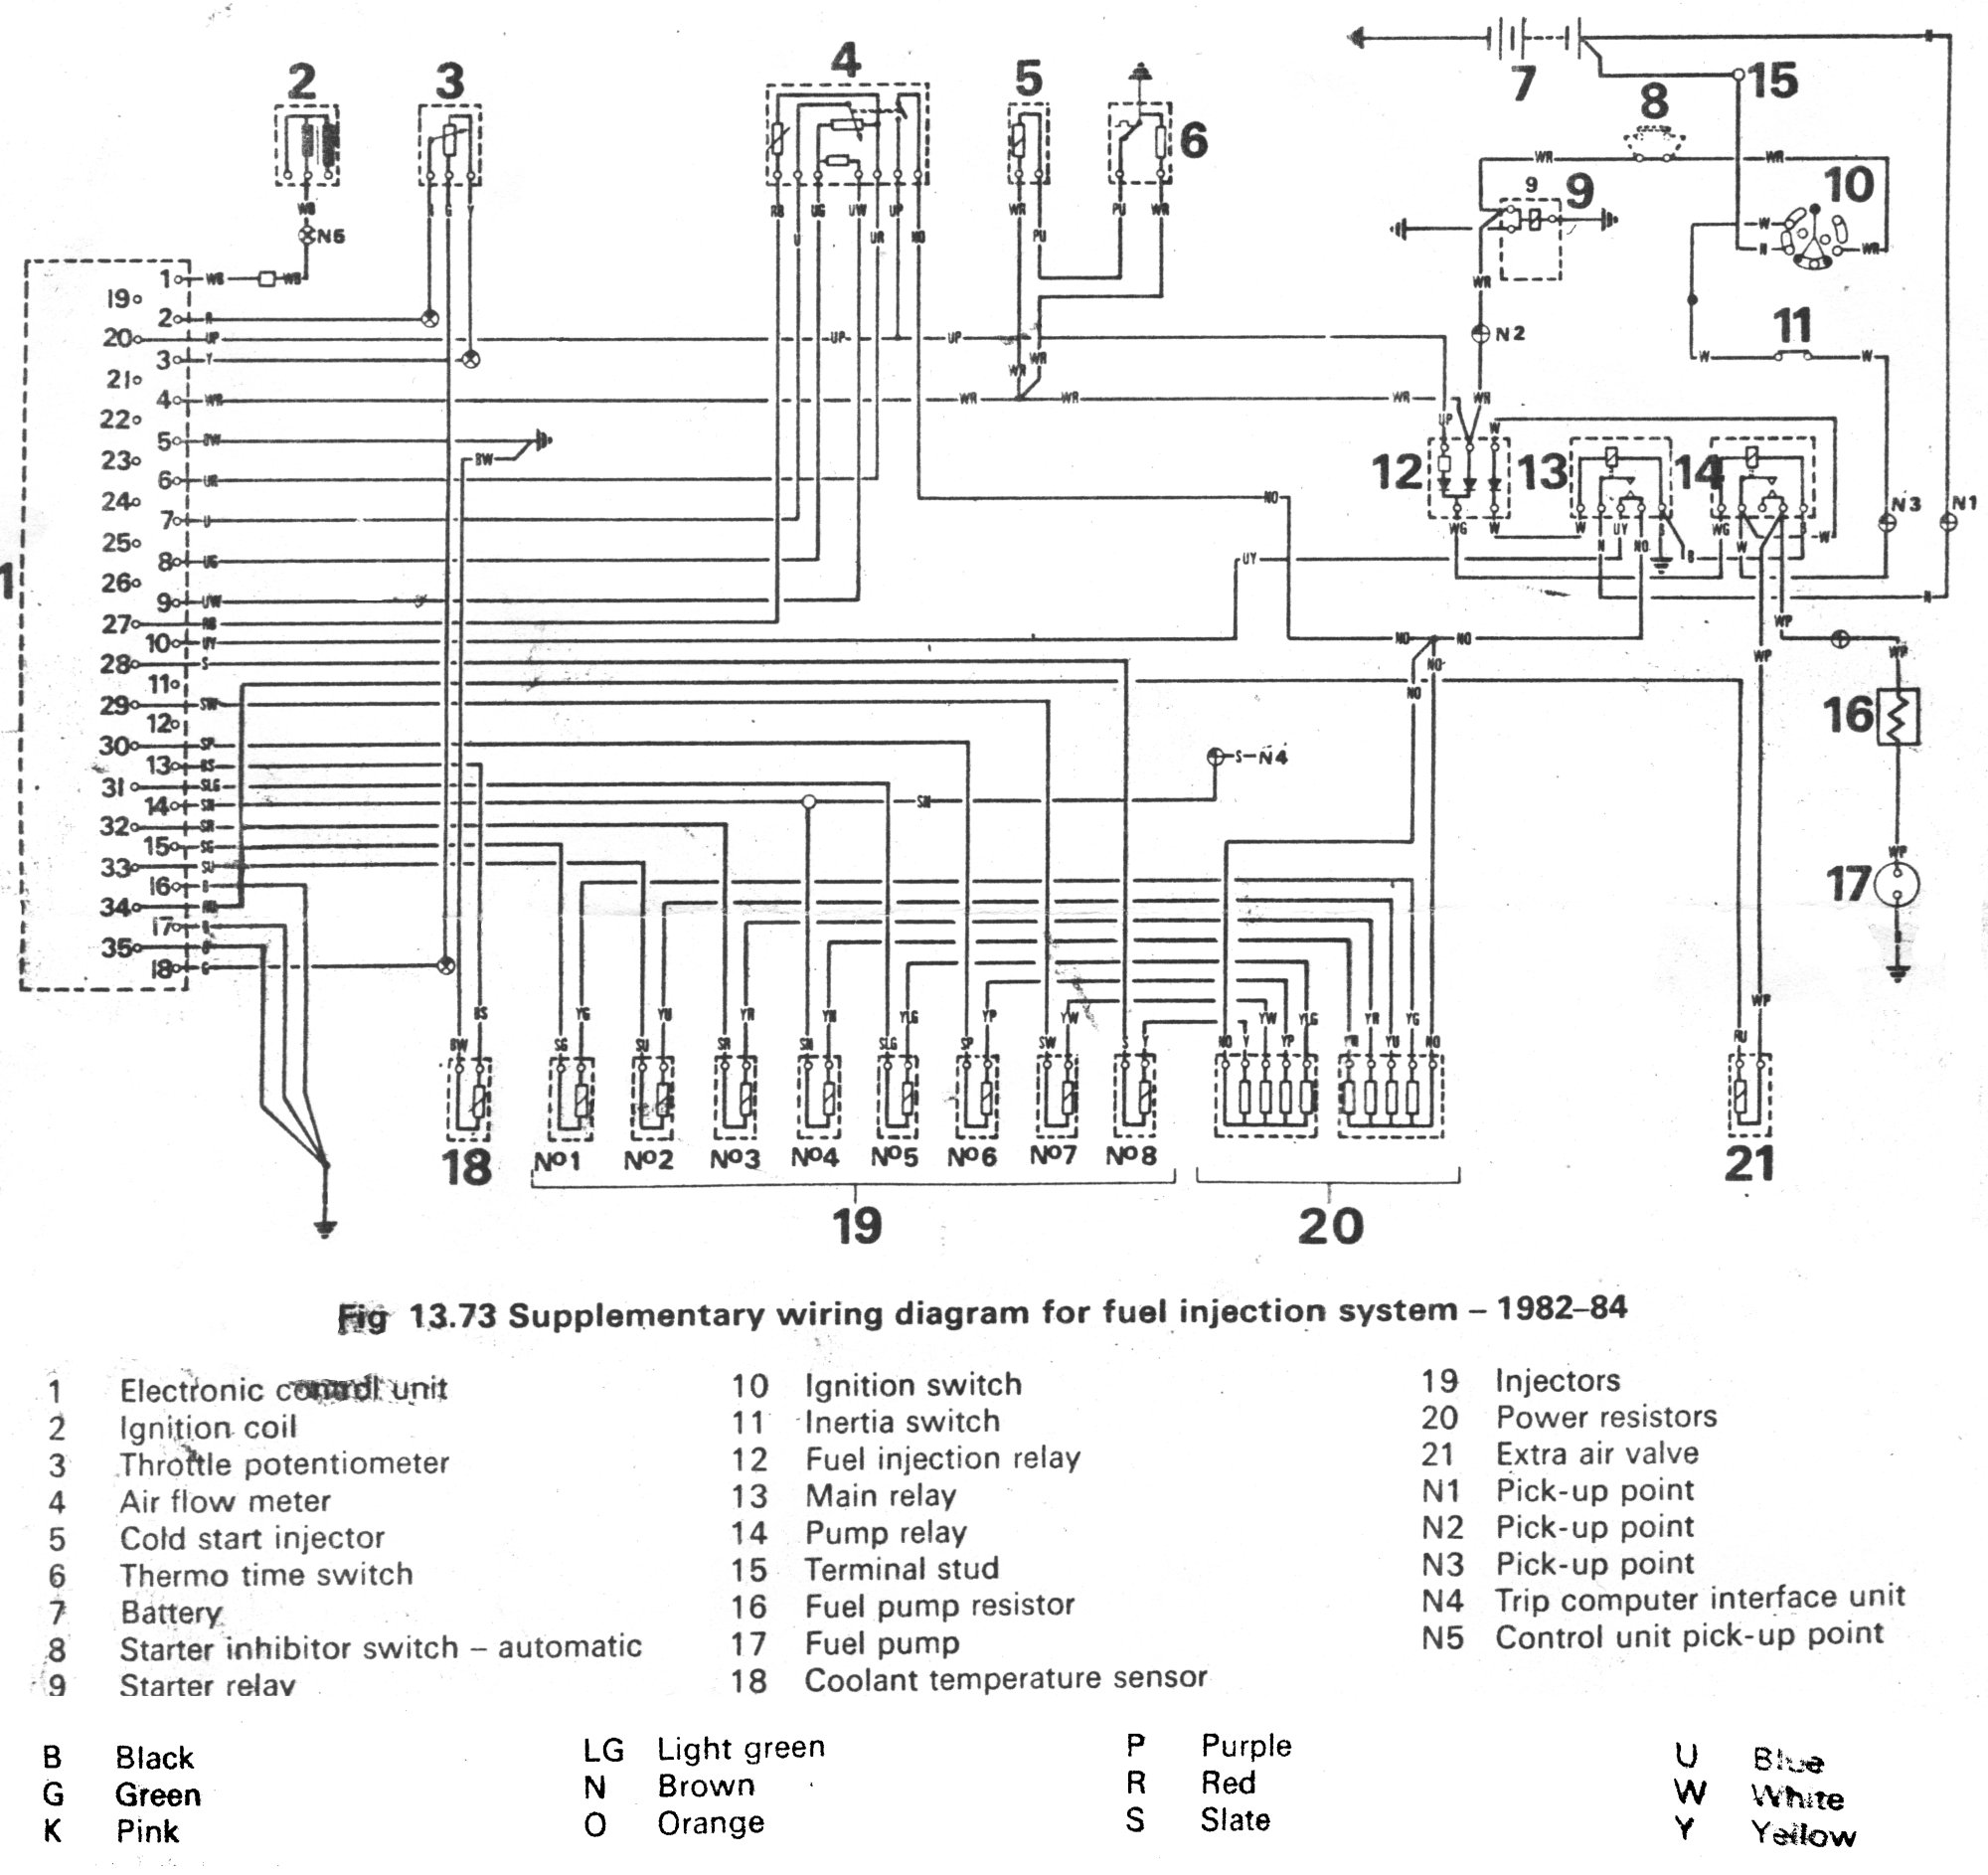 Land Rover Stereo Wiring Diagram Just Another Blog Radio Defender Ignition Schema Diagrams Rh 35 Justanotherbeautyblog De Discovery 2